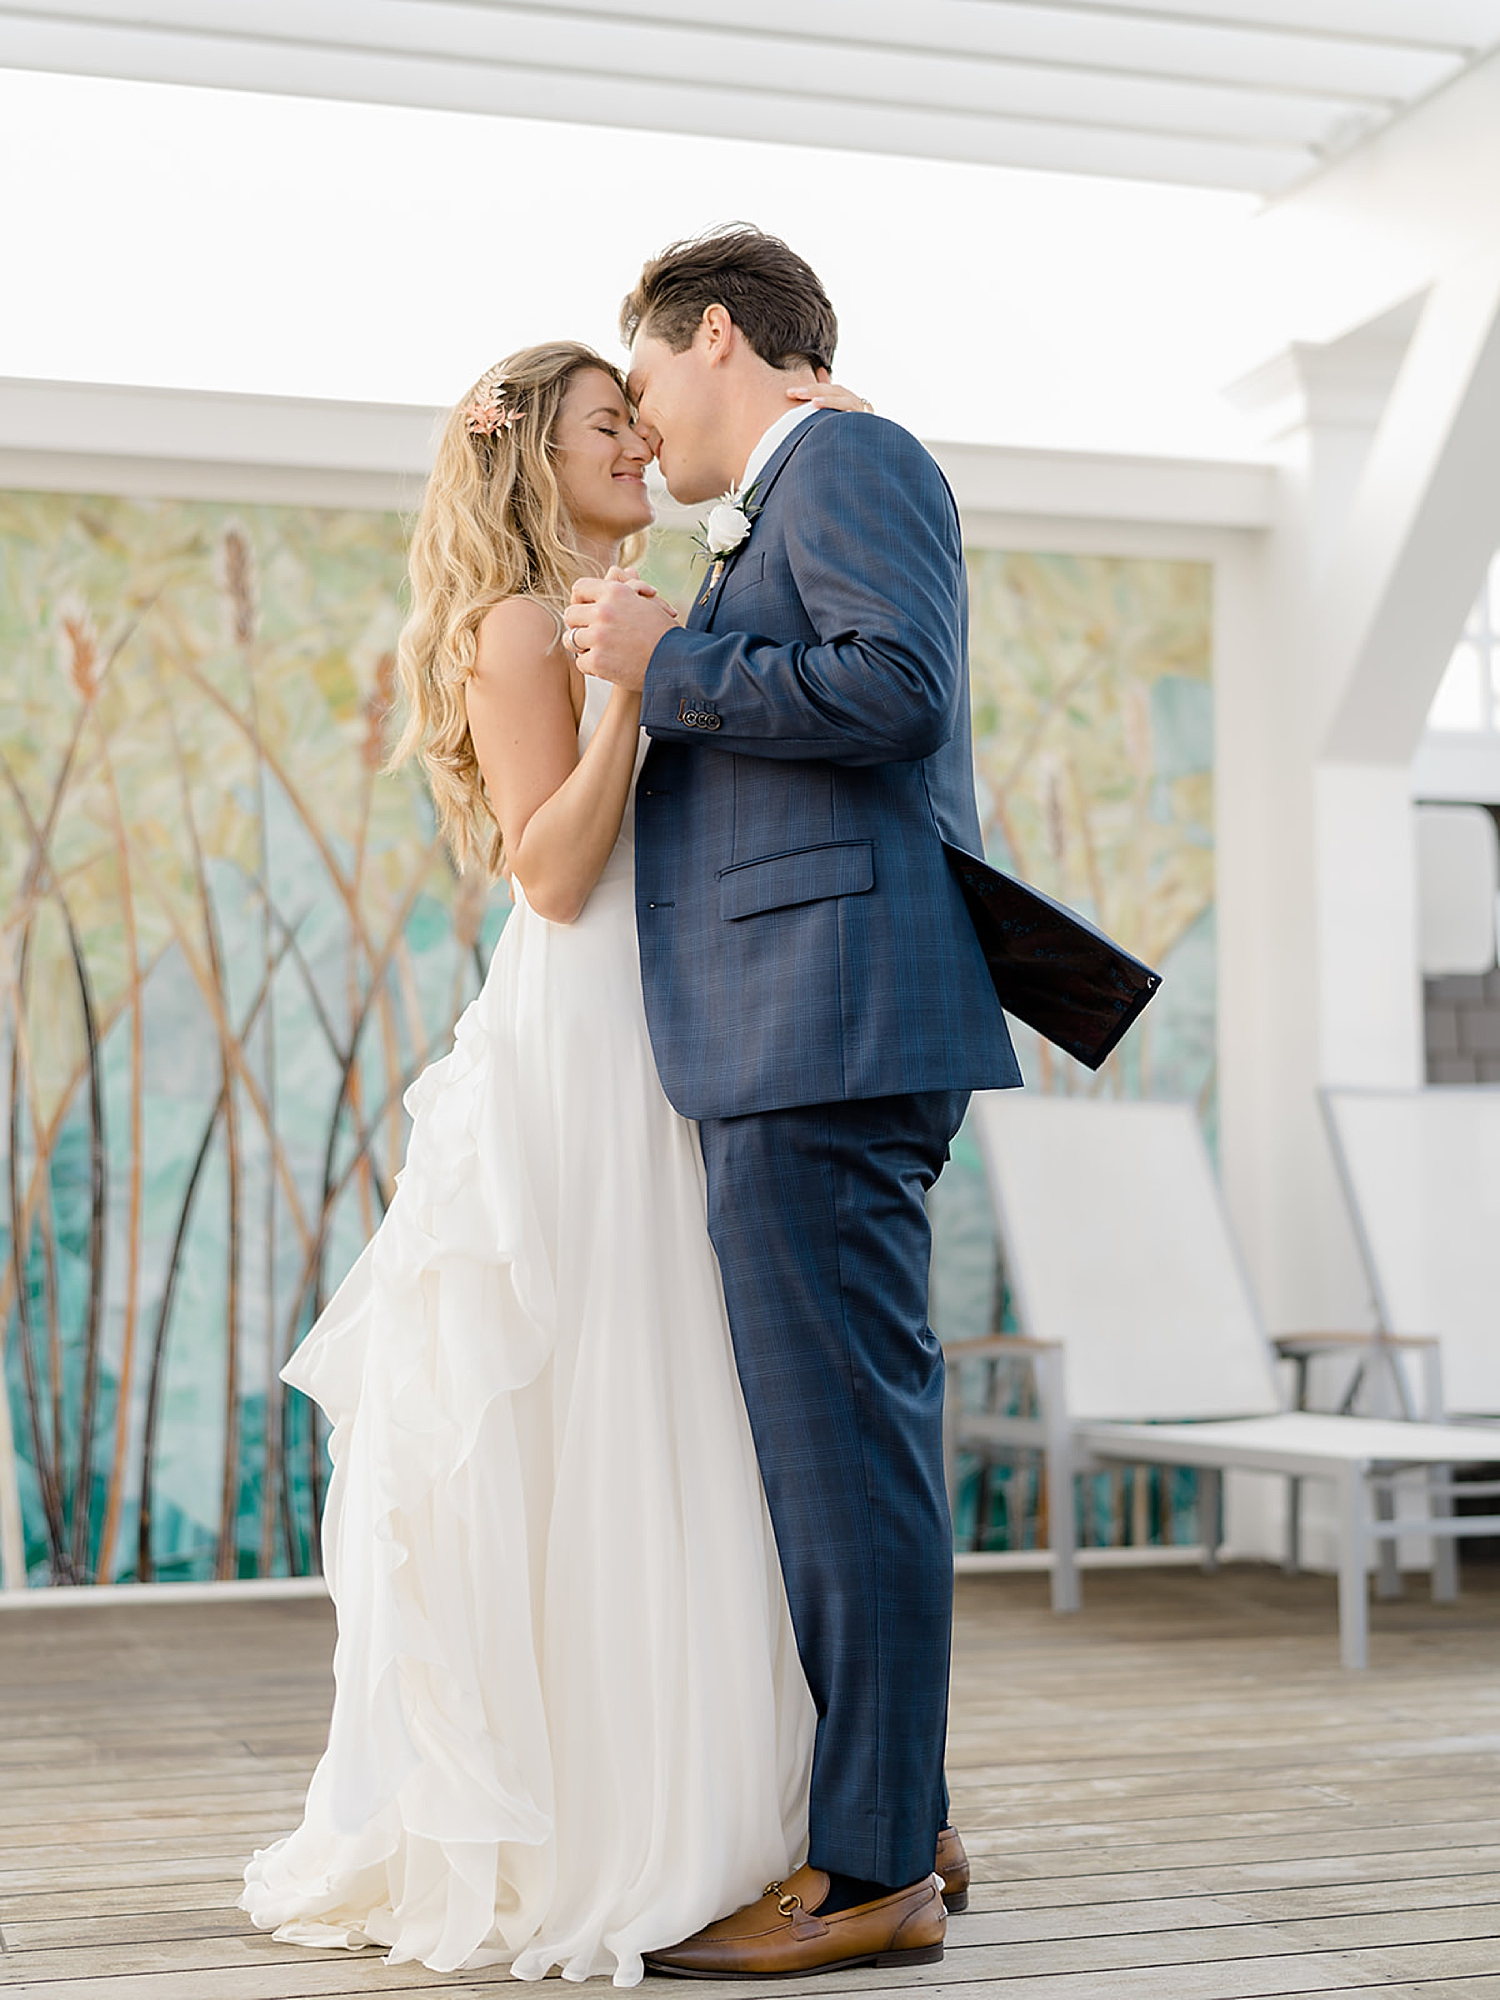 The Reeds at Shelter Haven Wedding Photography by Magdalena Studios 0035